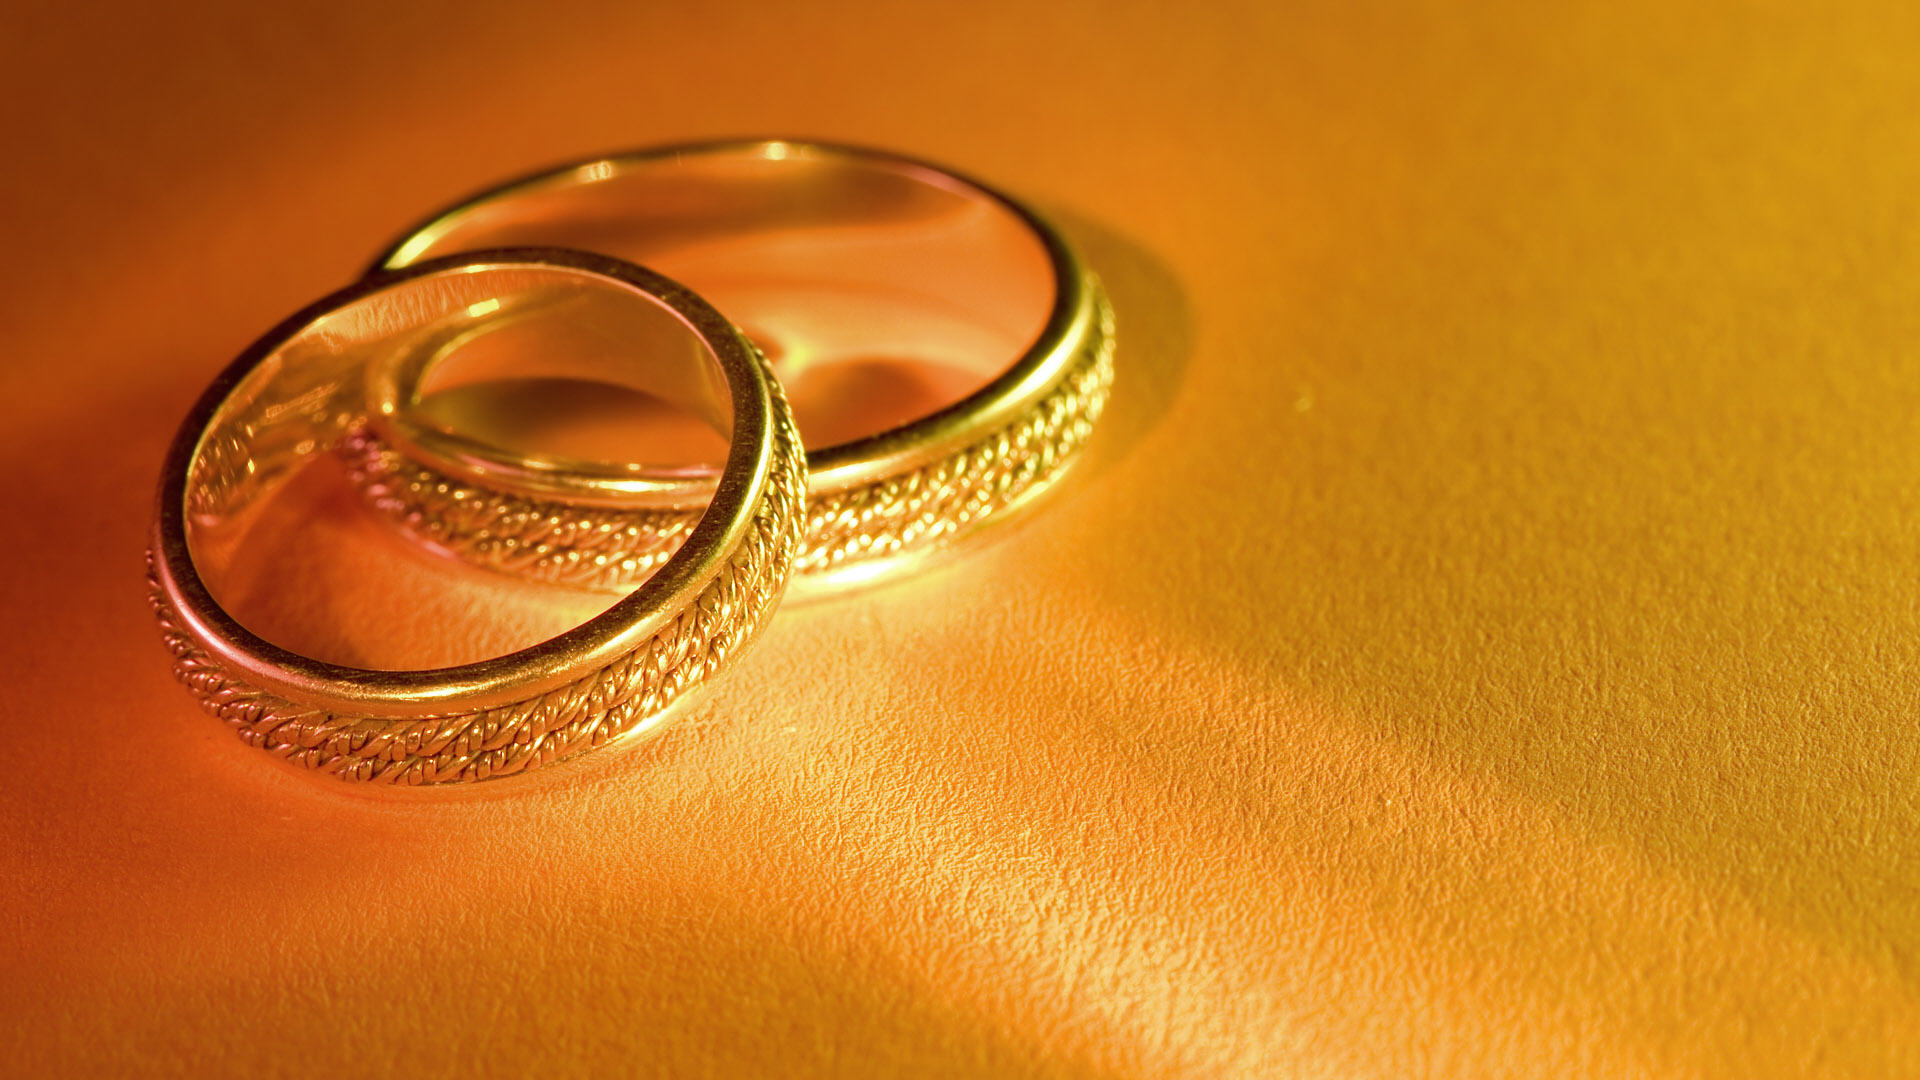 Wedding Day Ring Download HD Wallpapers 1920x1080